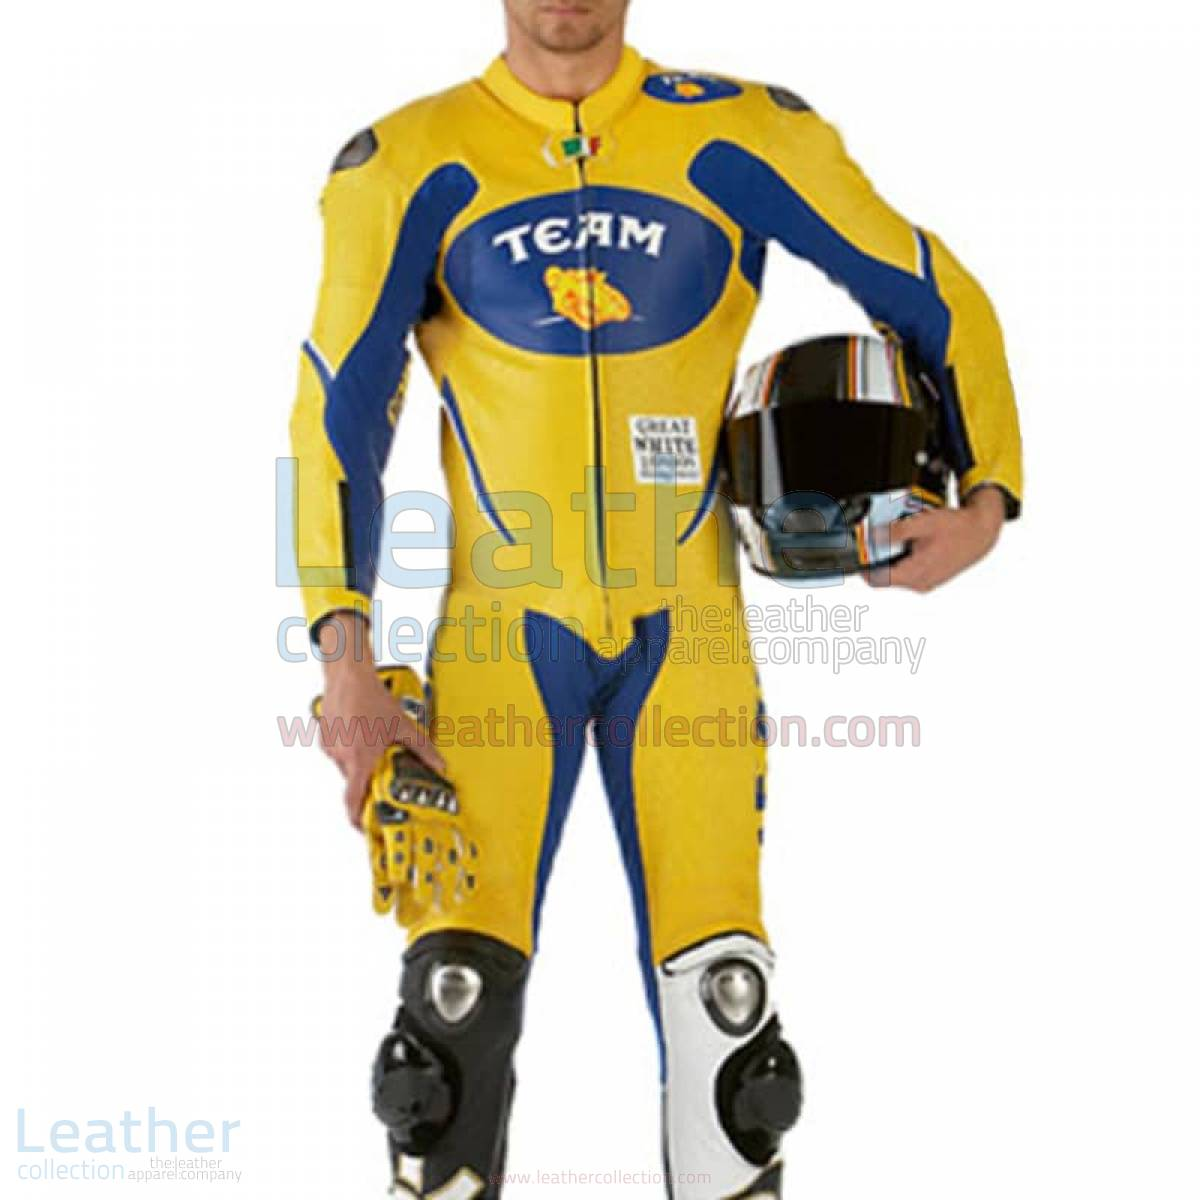 VR46 Team Motorcycle Racing Leather Suit –  Suit